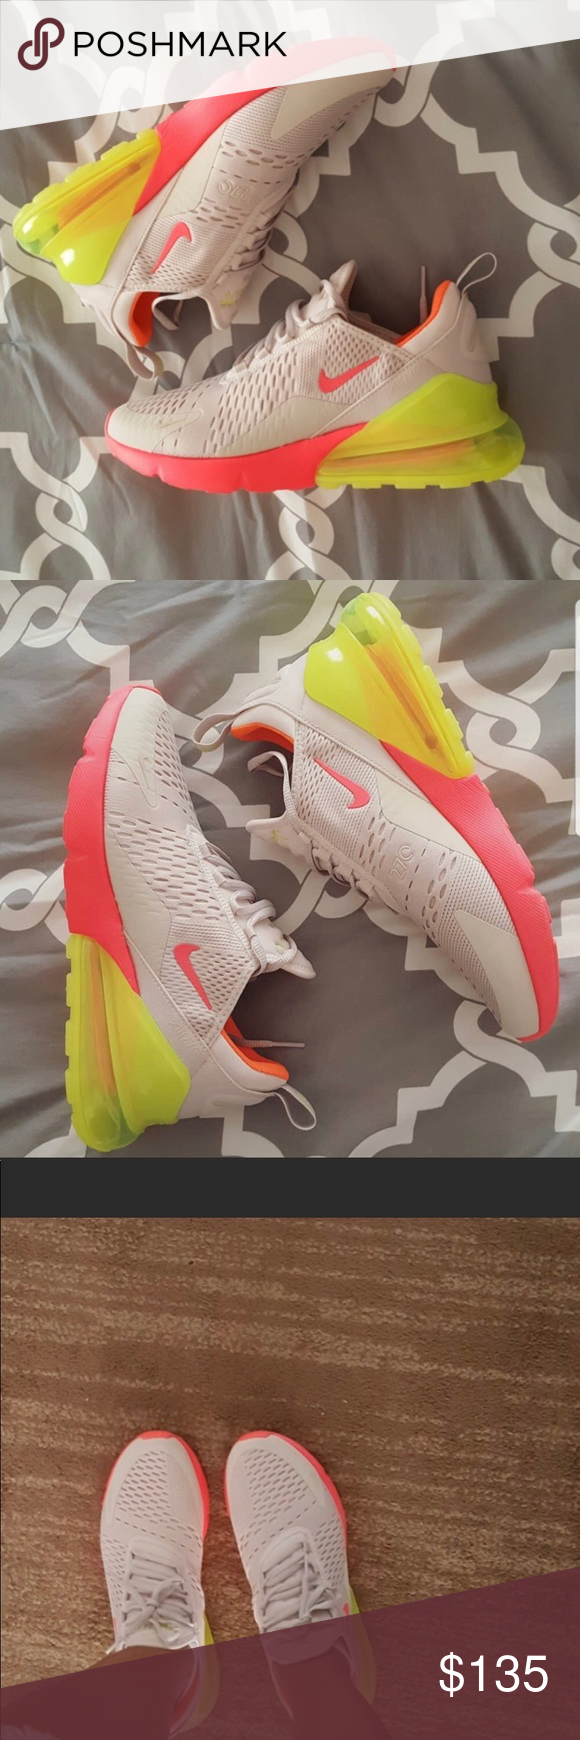 best website e748b 782f6 Nike Air Max 270. Women s 9.5 Like new. No visible signs of wear. Color  Desert  Sand Hot Punch Volt Total Orange   Vis Air Pack3-piece midsole offers ...